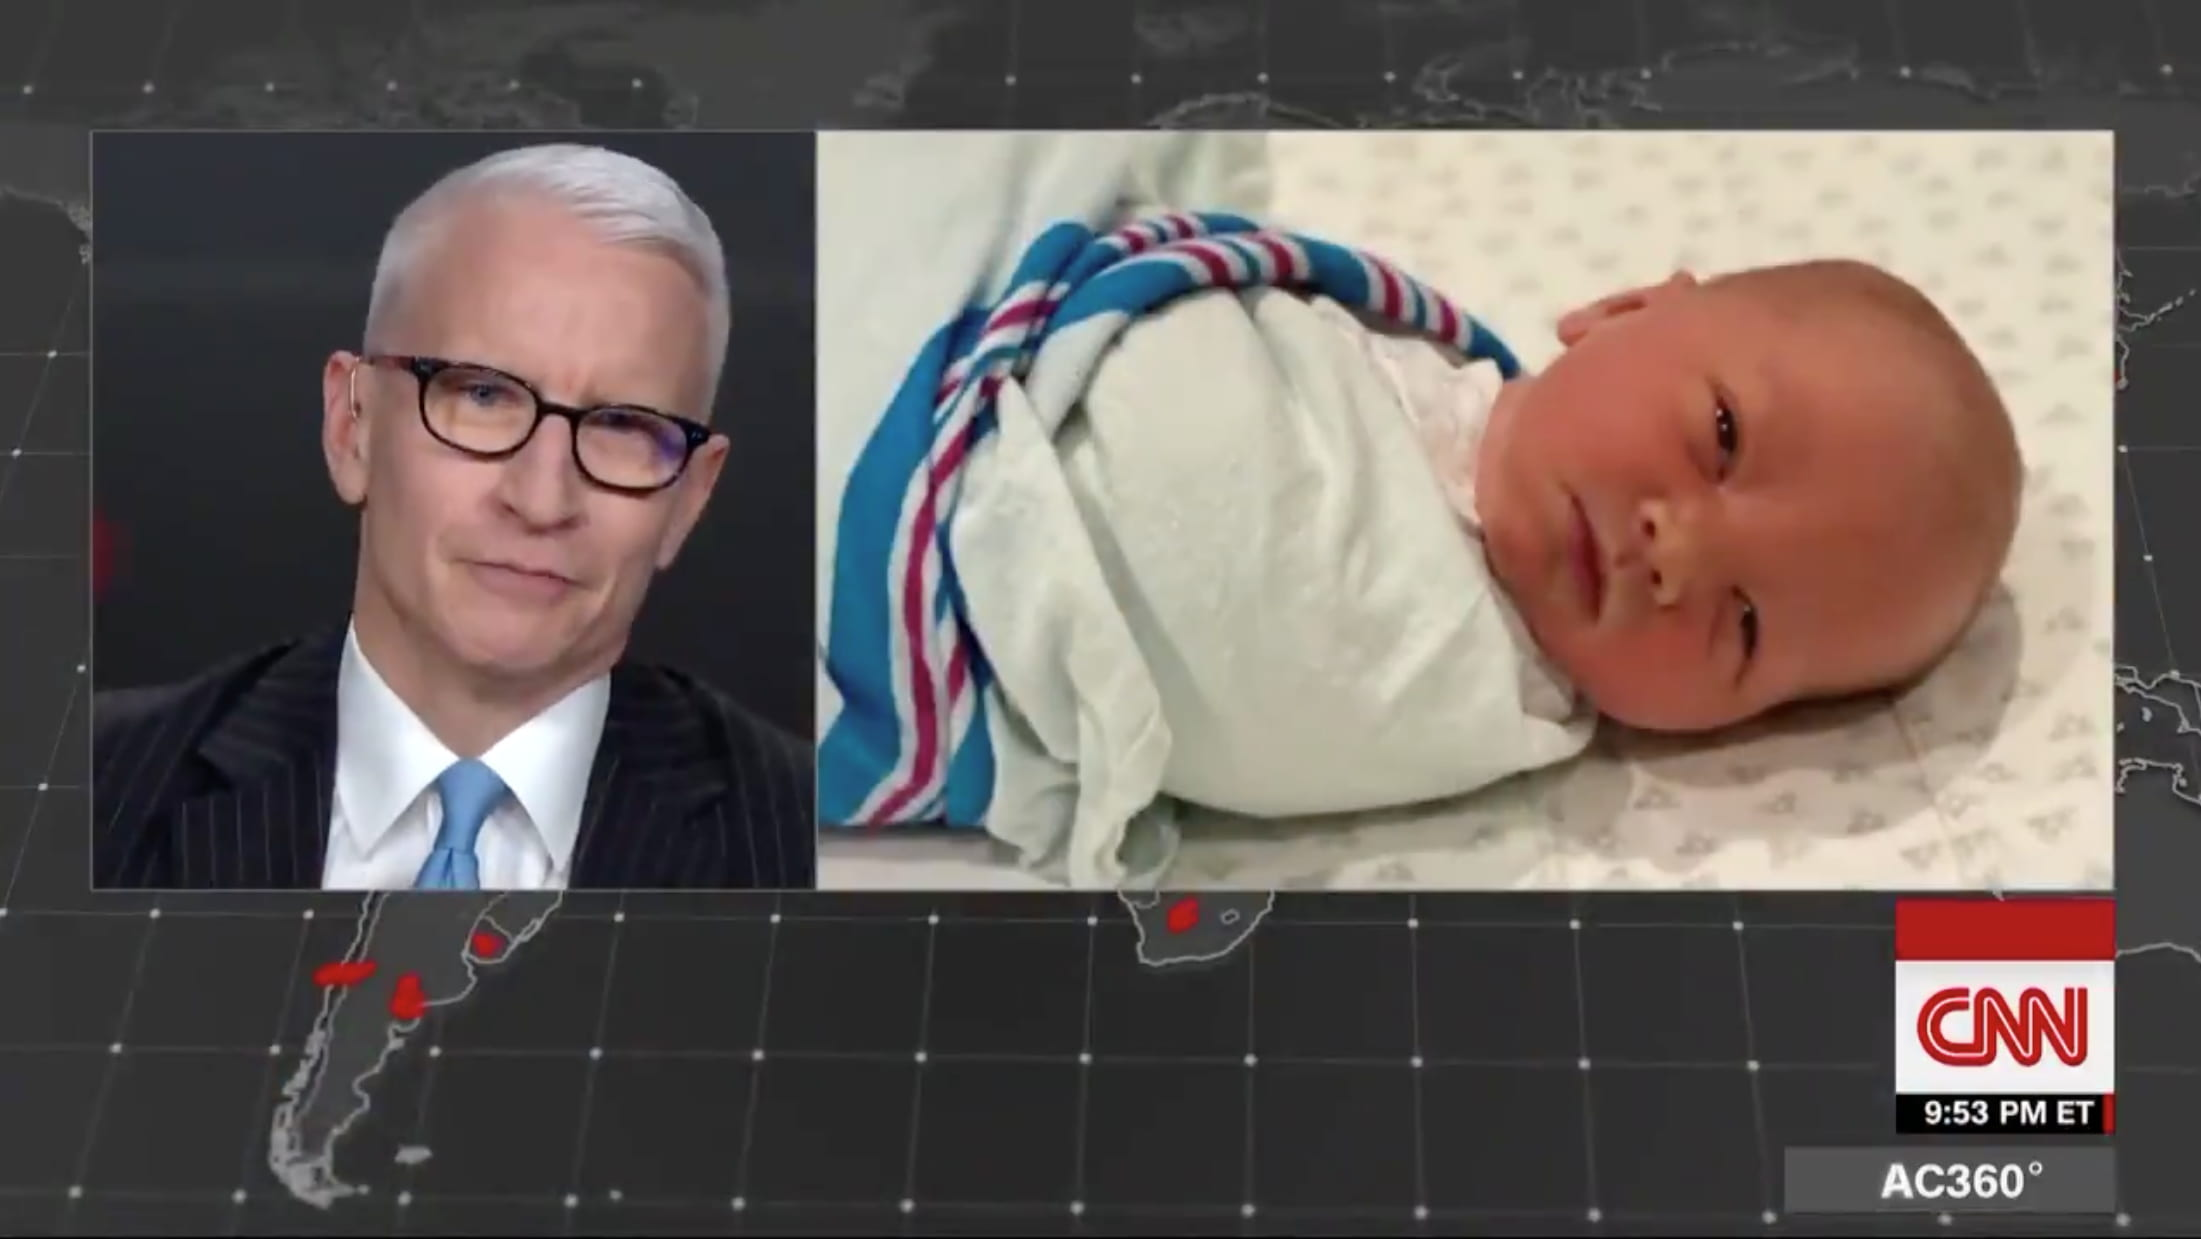 anderson cooper, daddy, son, gay